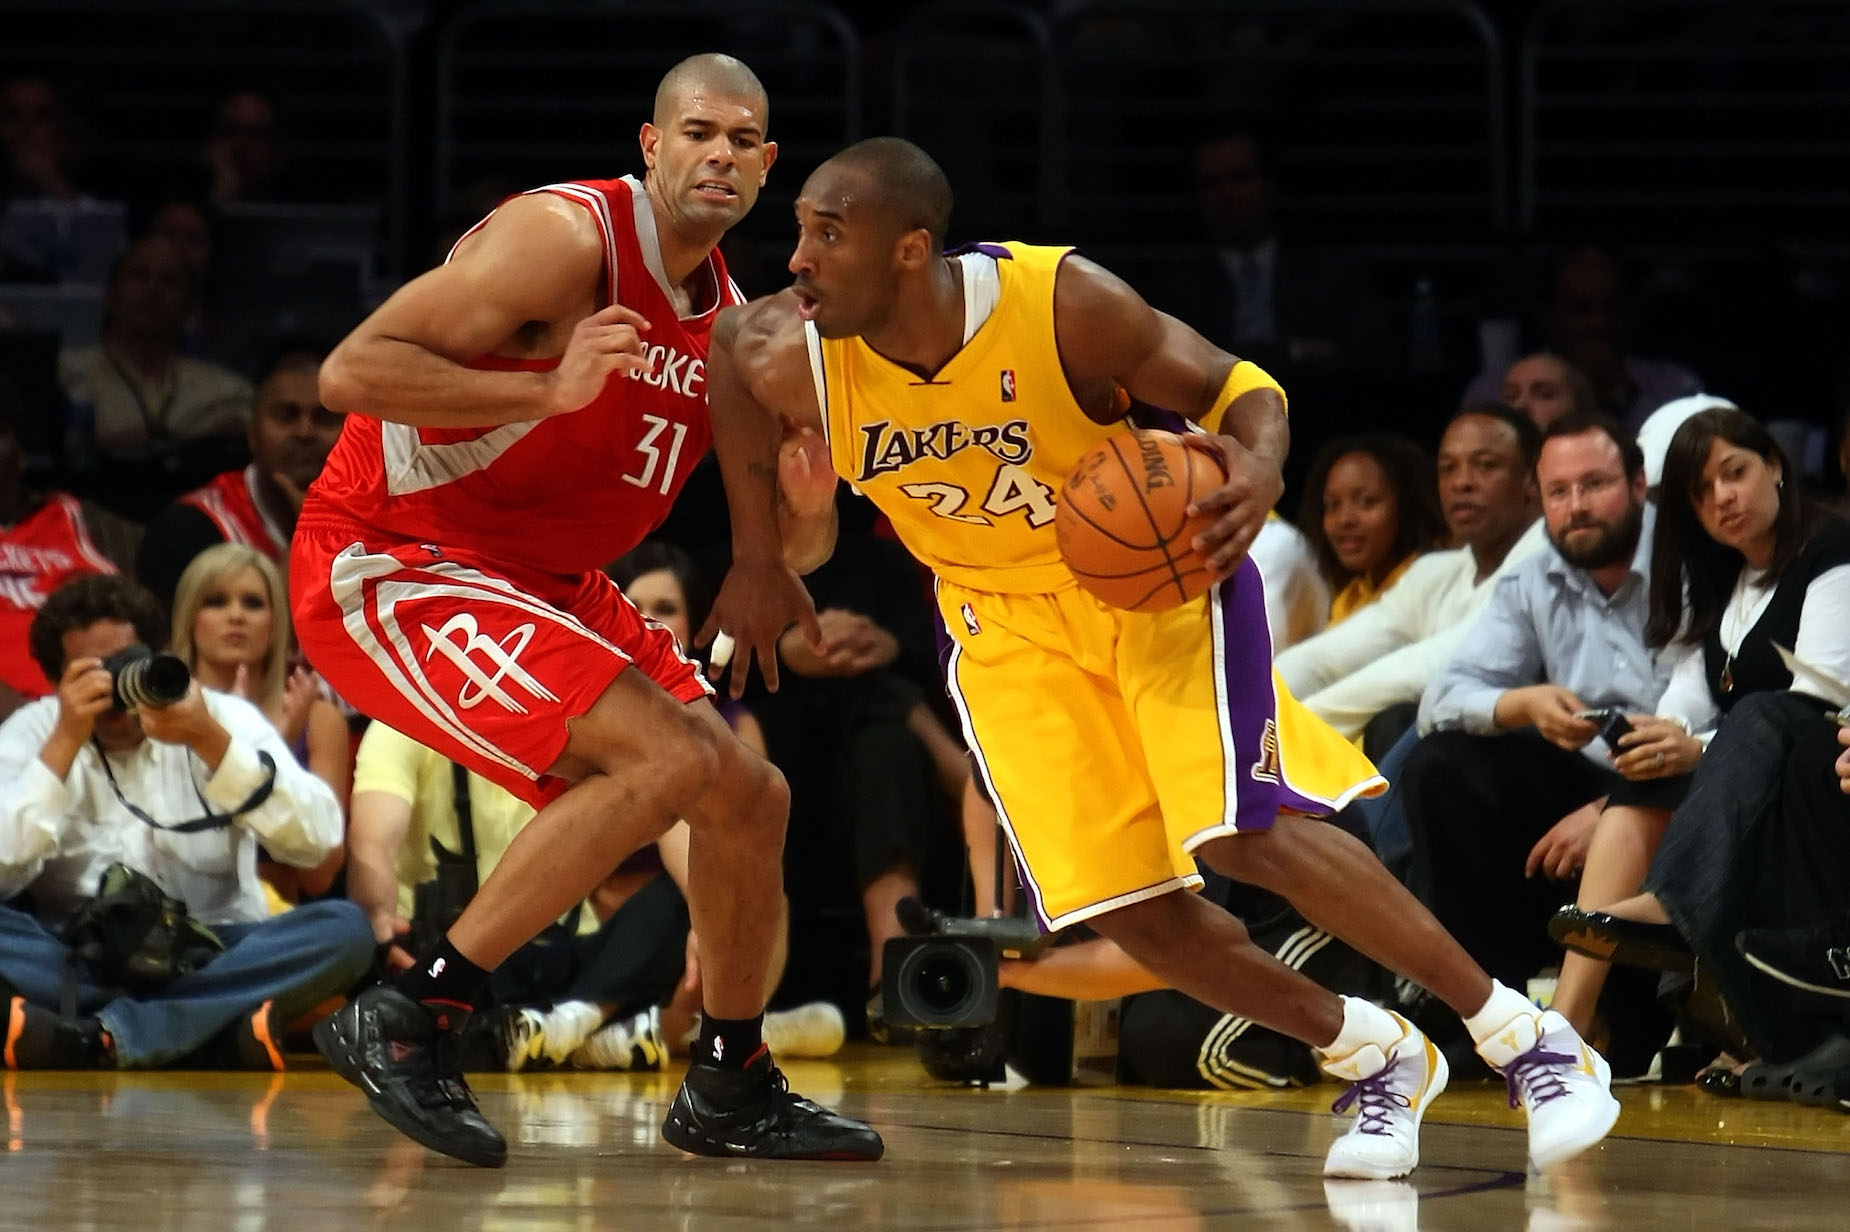 Shane Battier tried to defend against Kobe Bryant by taking advantage of his Mamba Mentality.